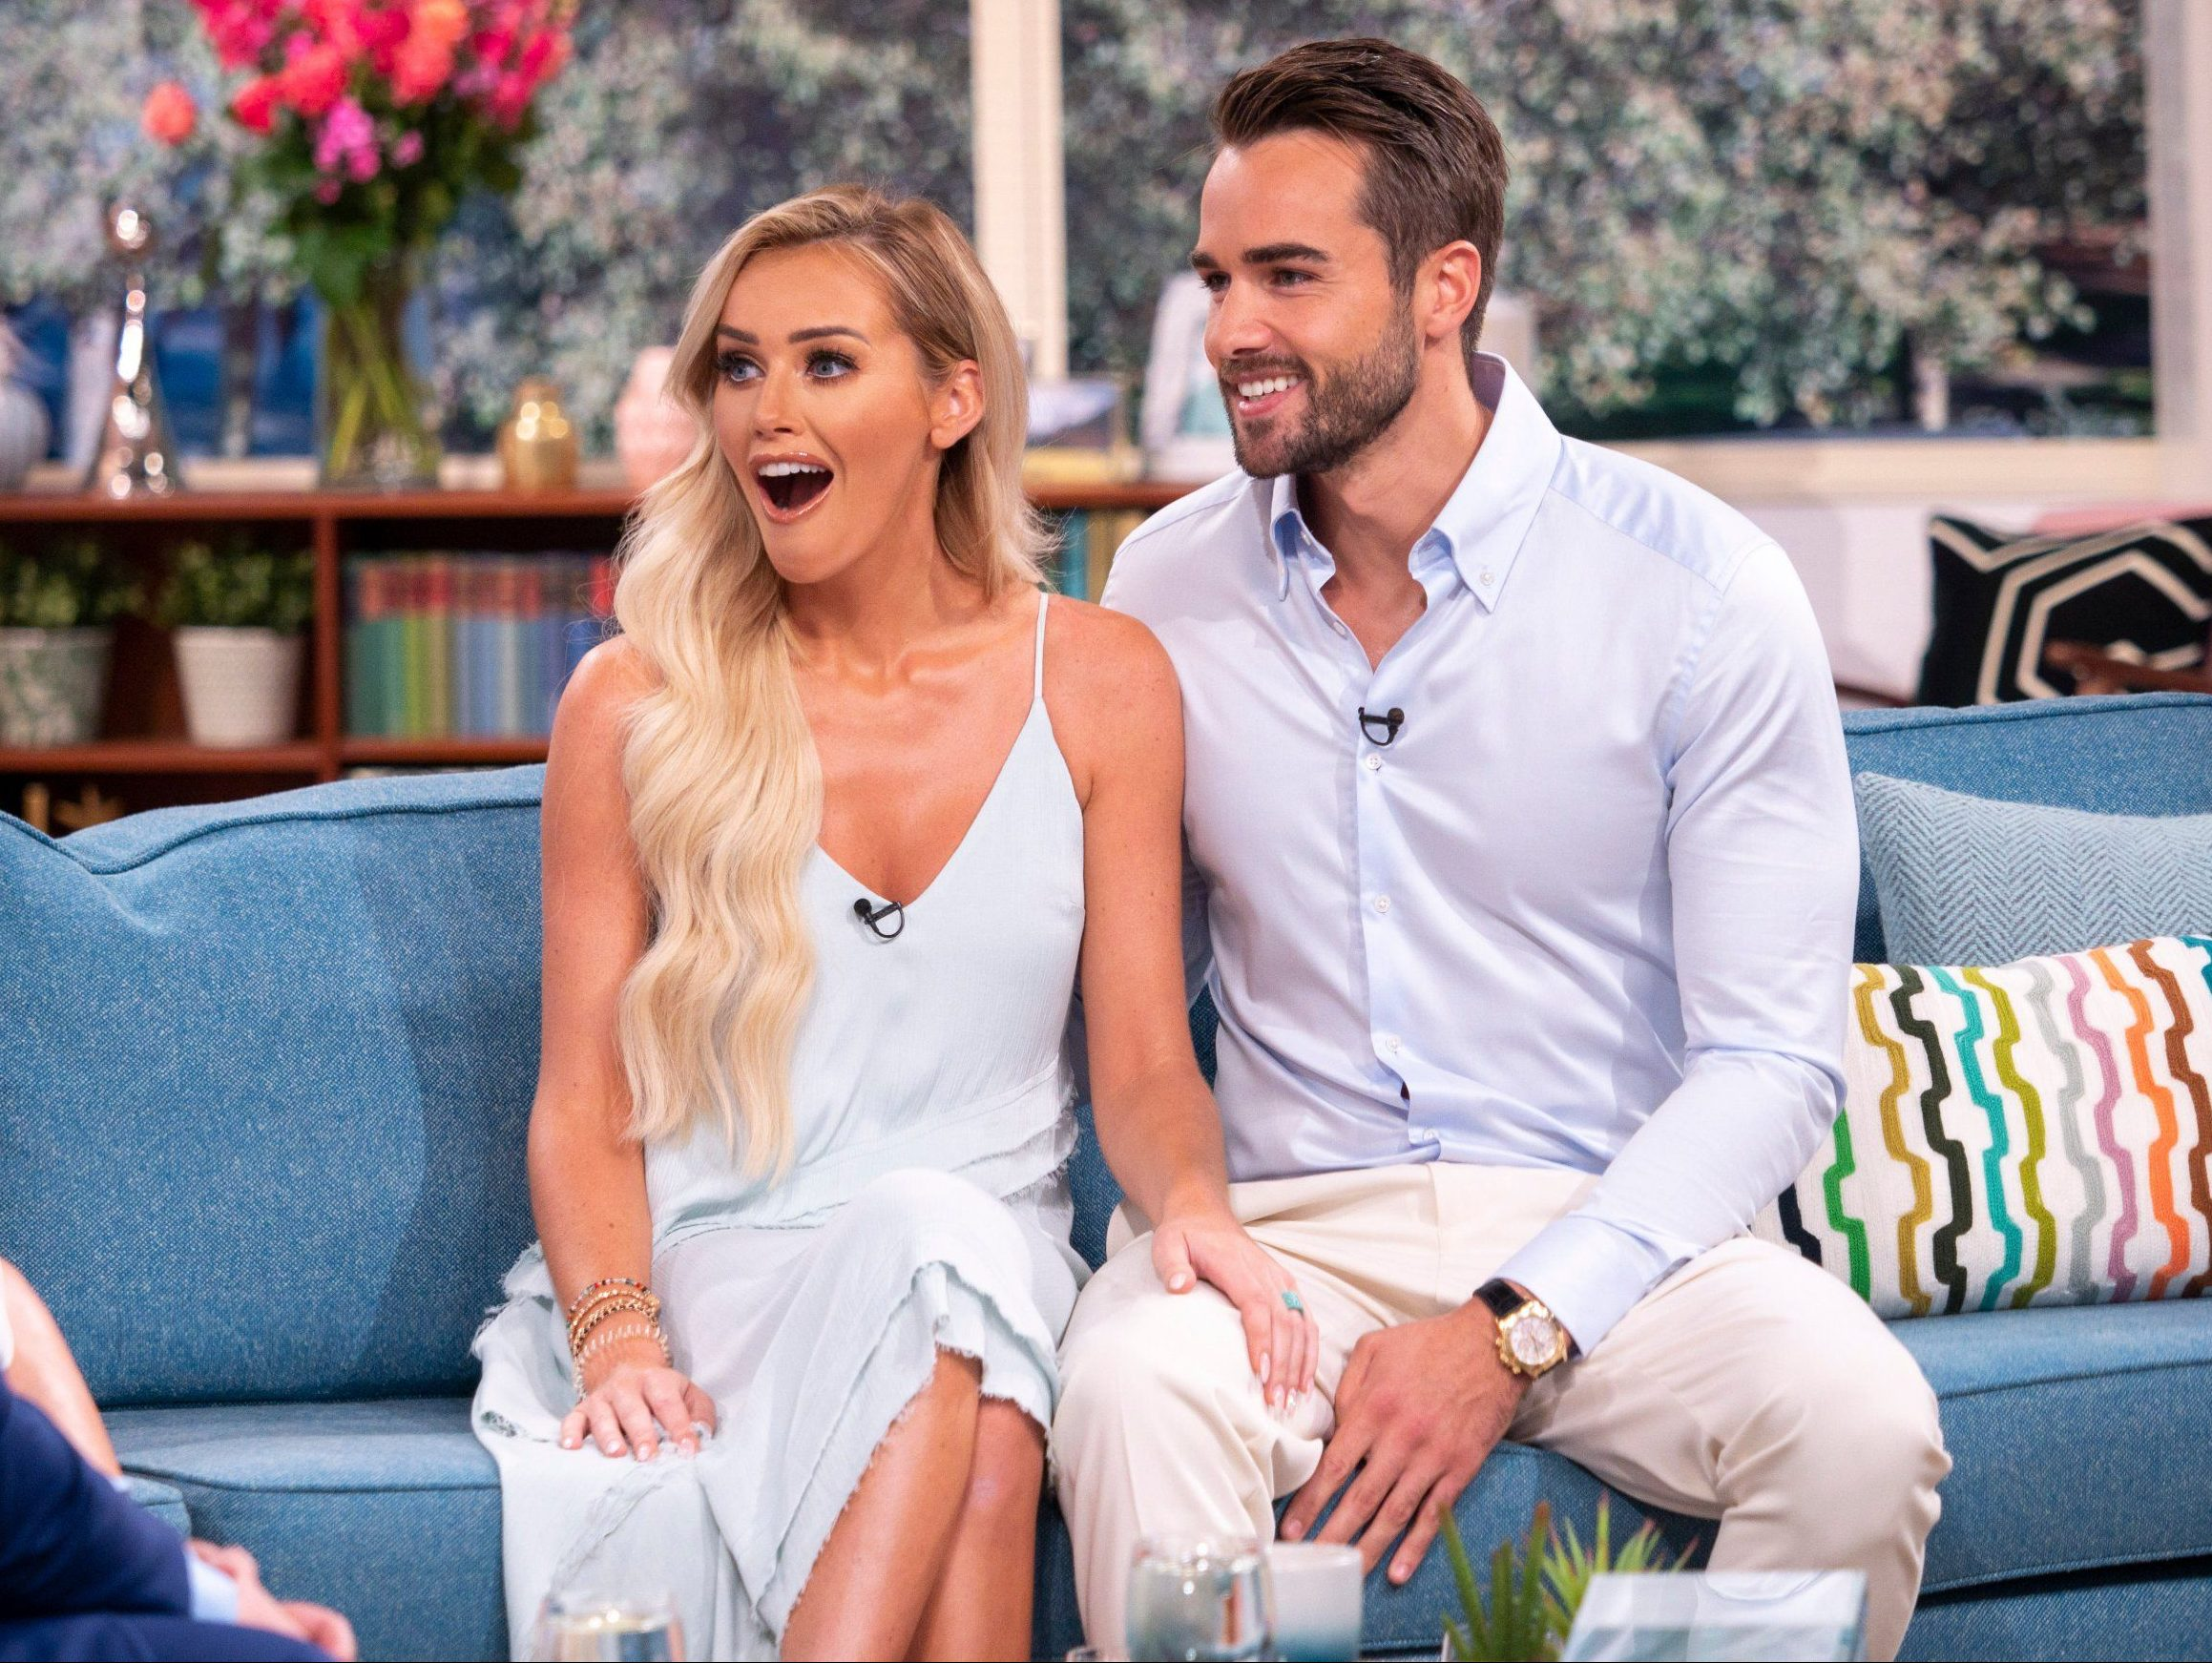 Love Island's Laura Anderson and Paul Knops are still yet to make relationship official